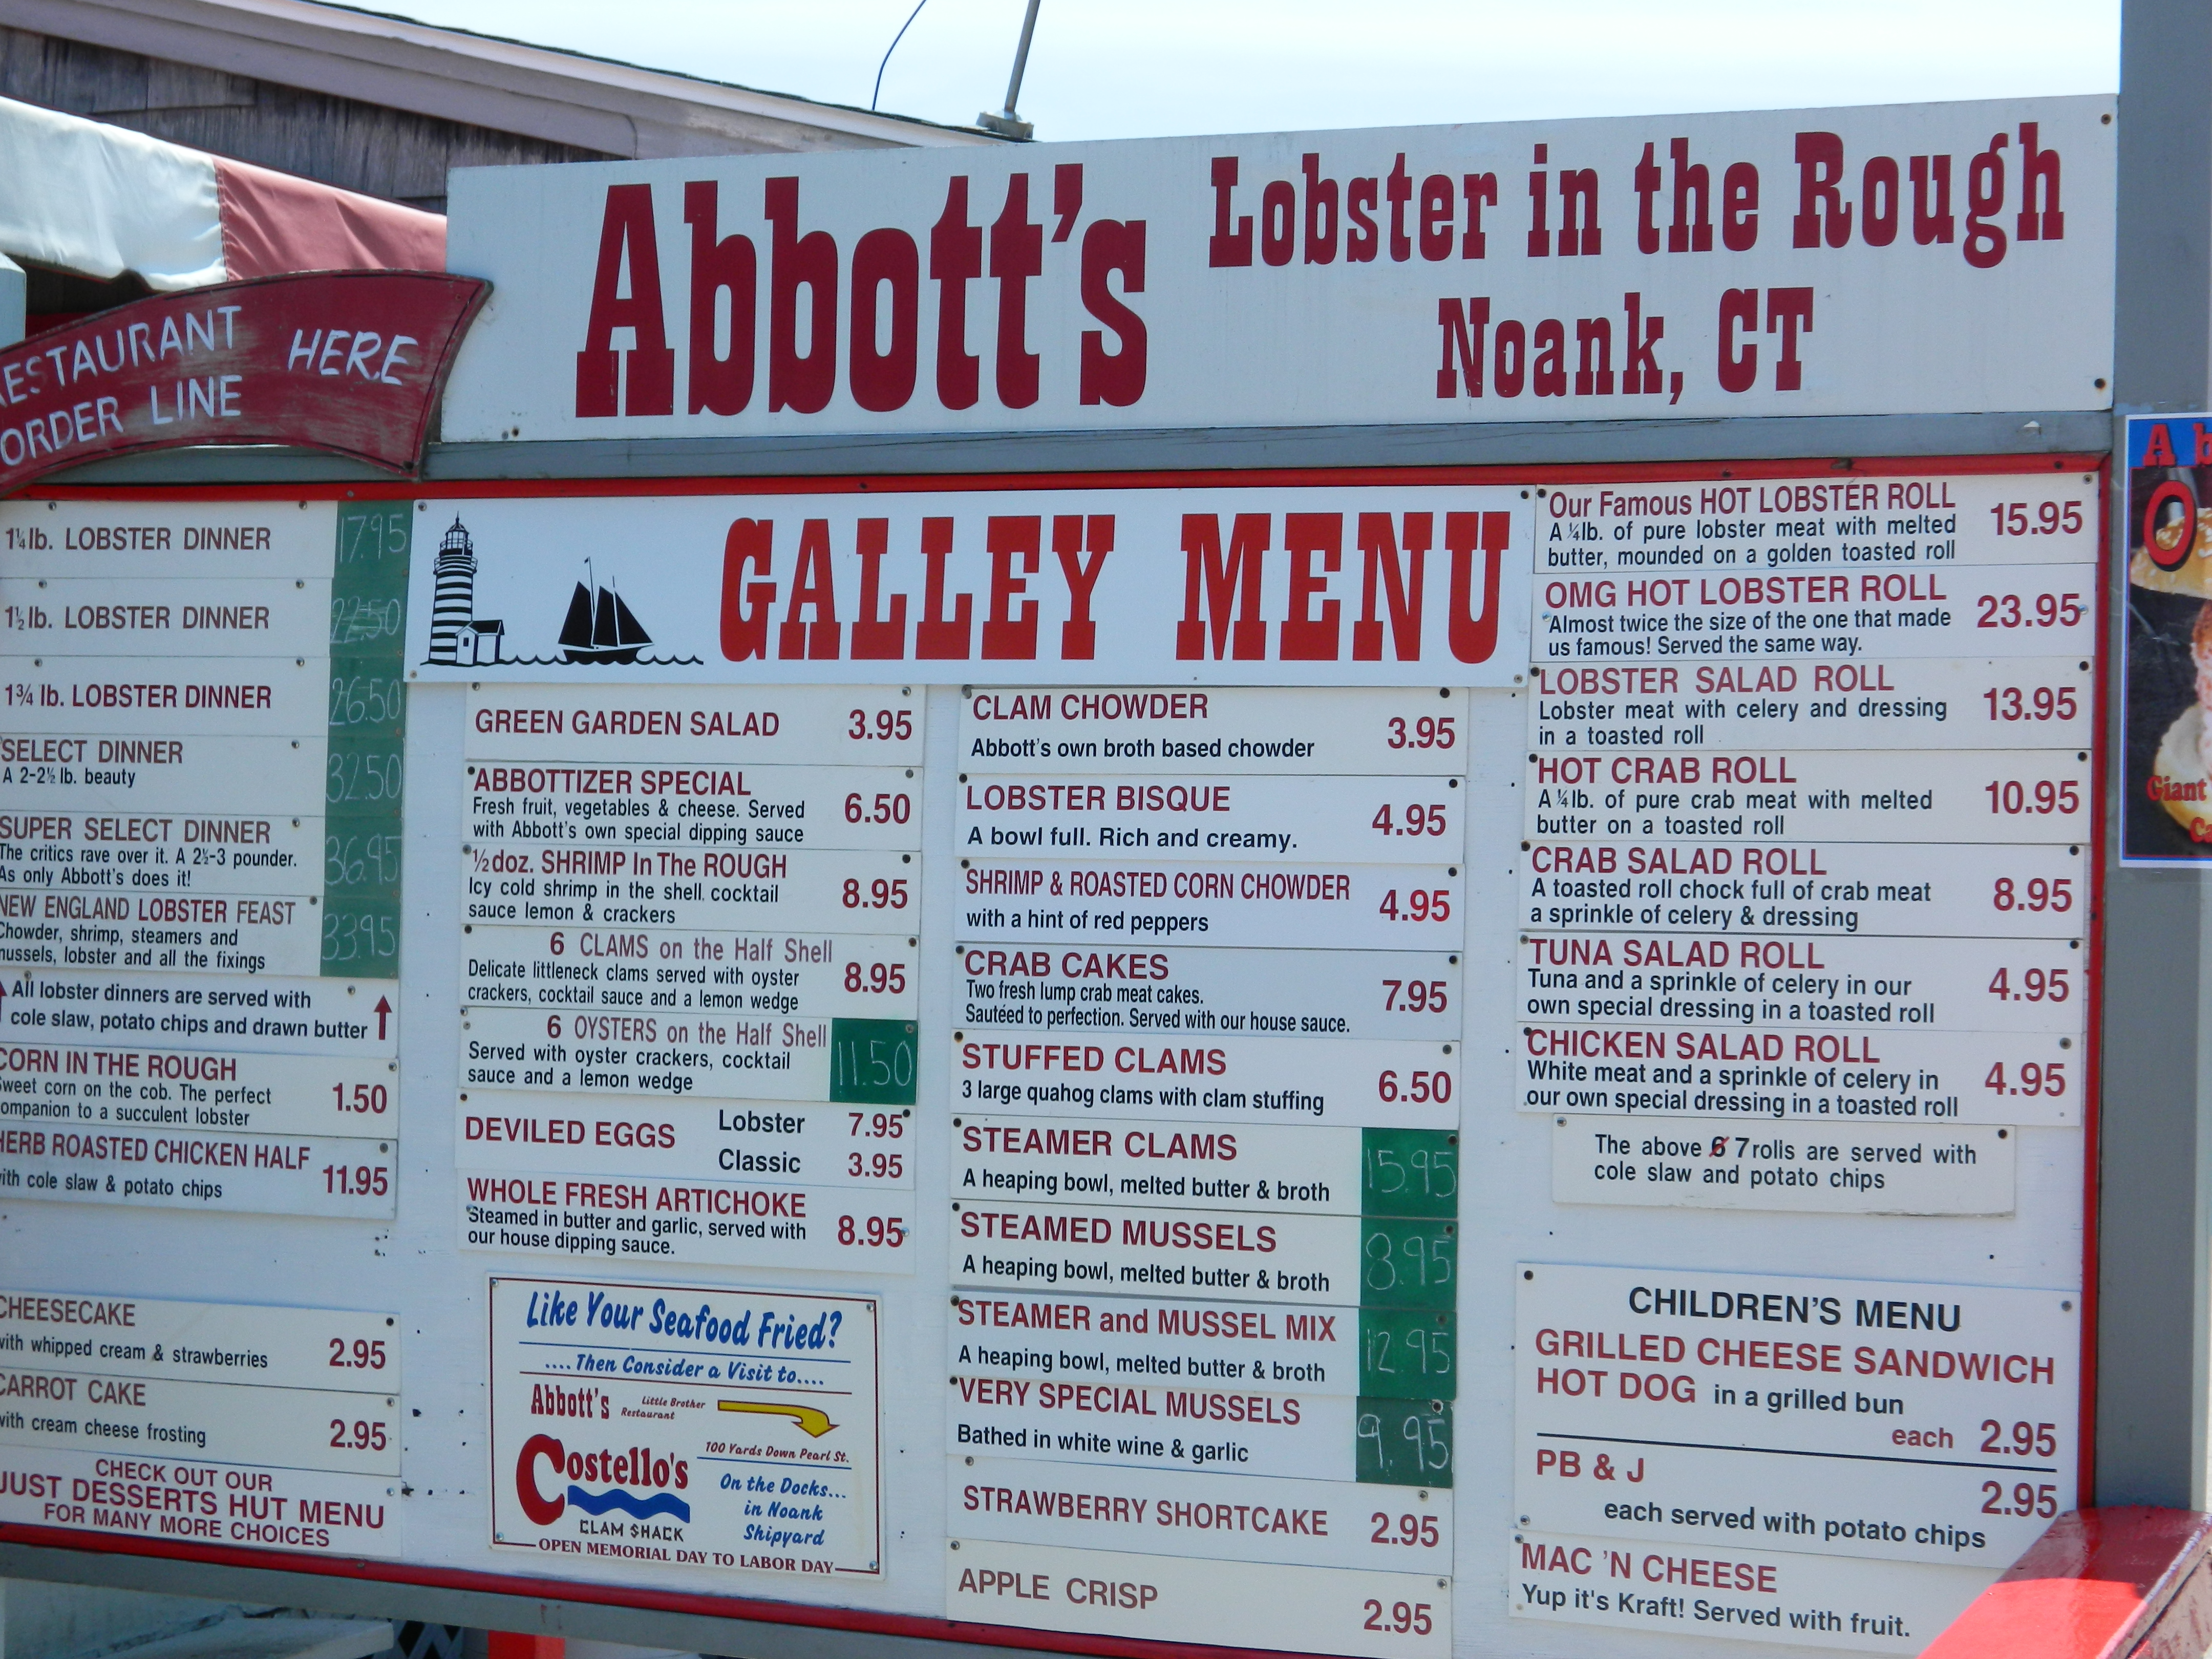 Destination: Abbott's Lobster in the Rough | newsandviewsjb